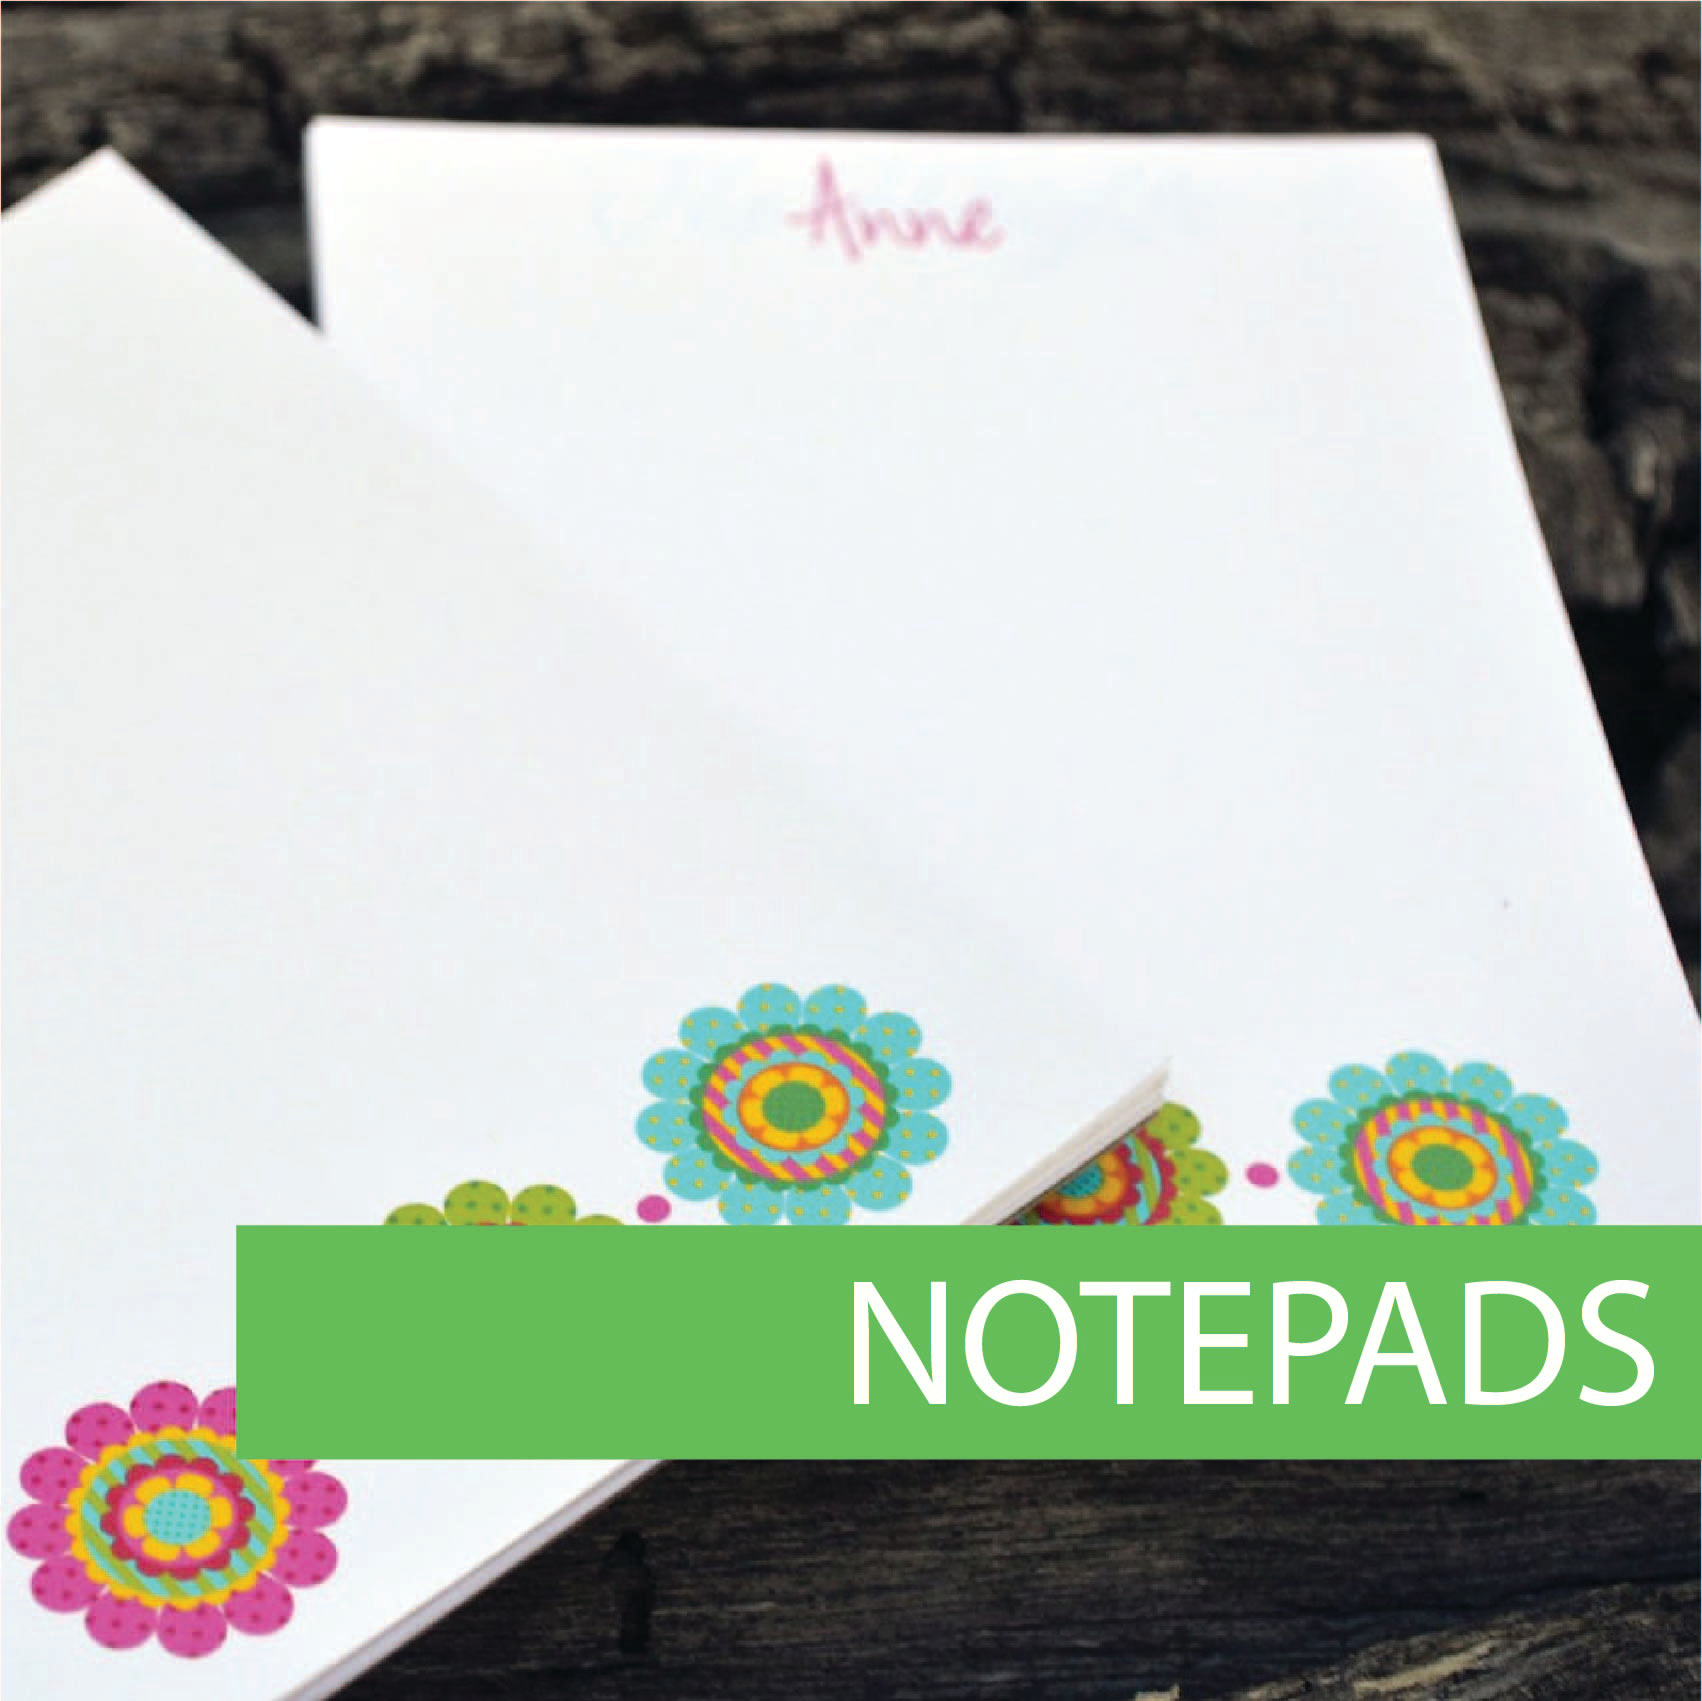 Company notepads